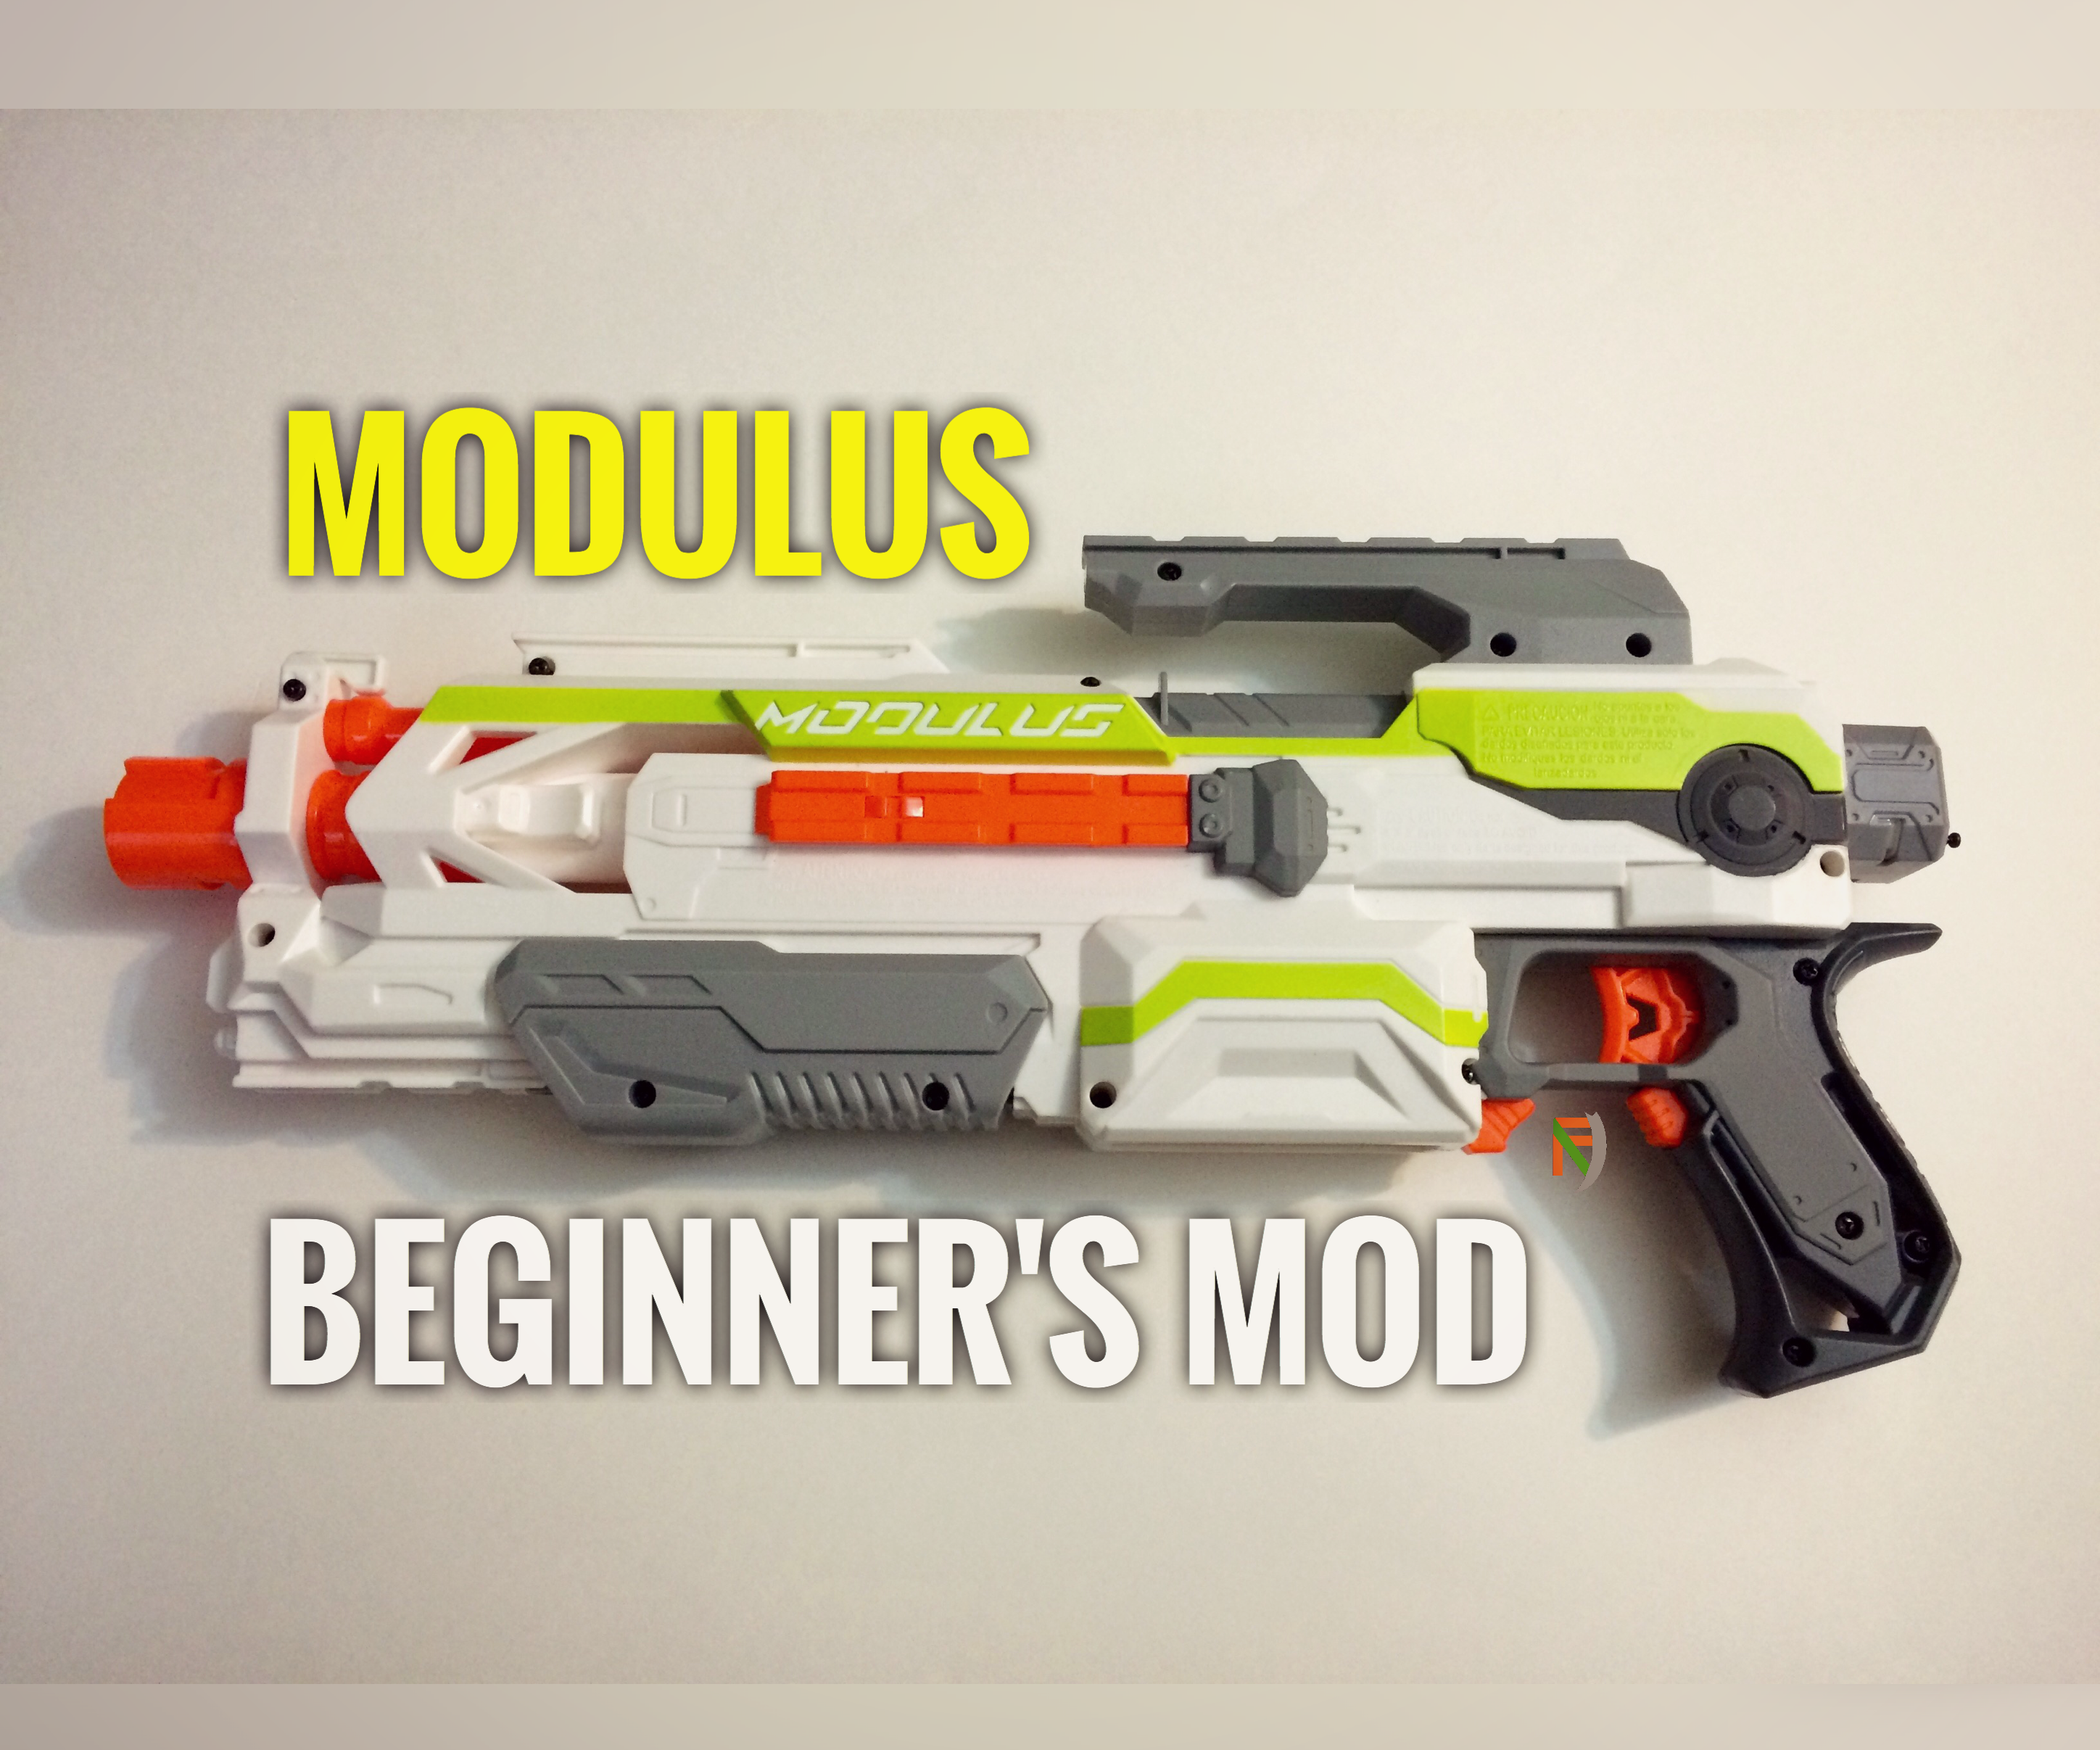 Nerf Modulus Modification Guide for Beginners: 9 Steps on